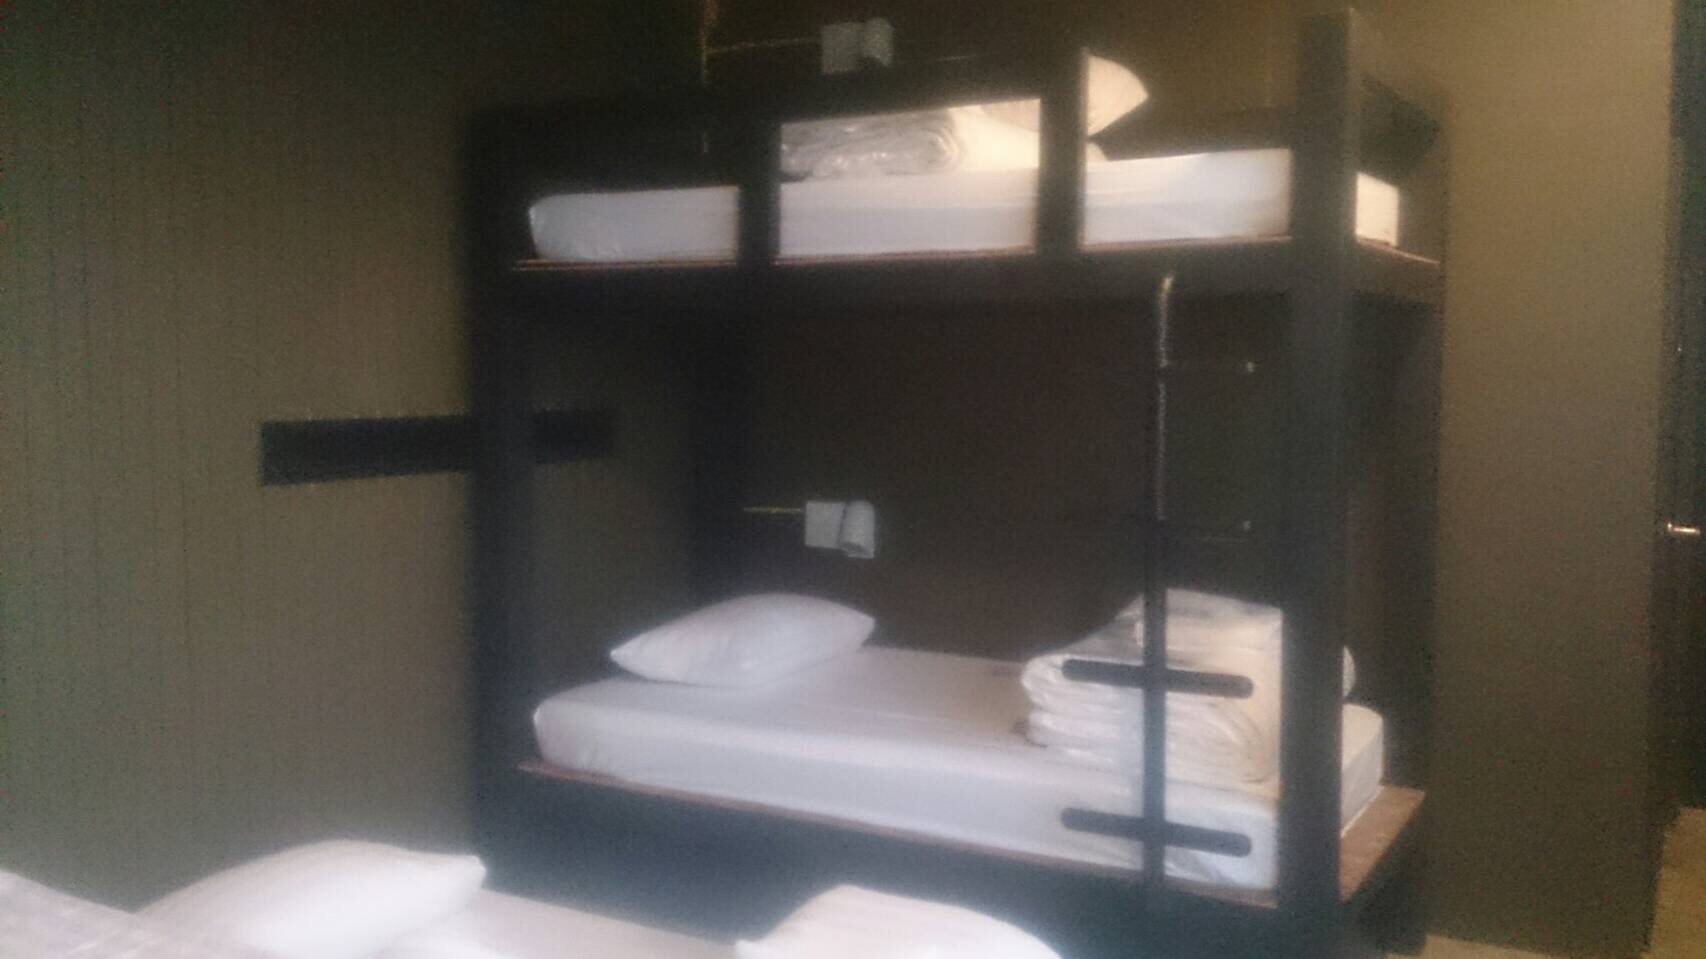 Family Room -(1 King Bed and 1 Bunk Bed) ห้องน้ำในตัว